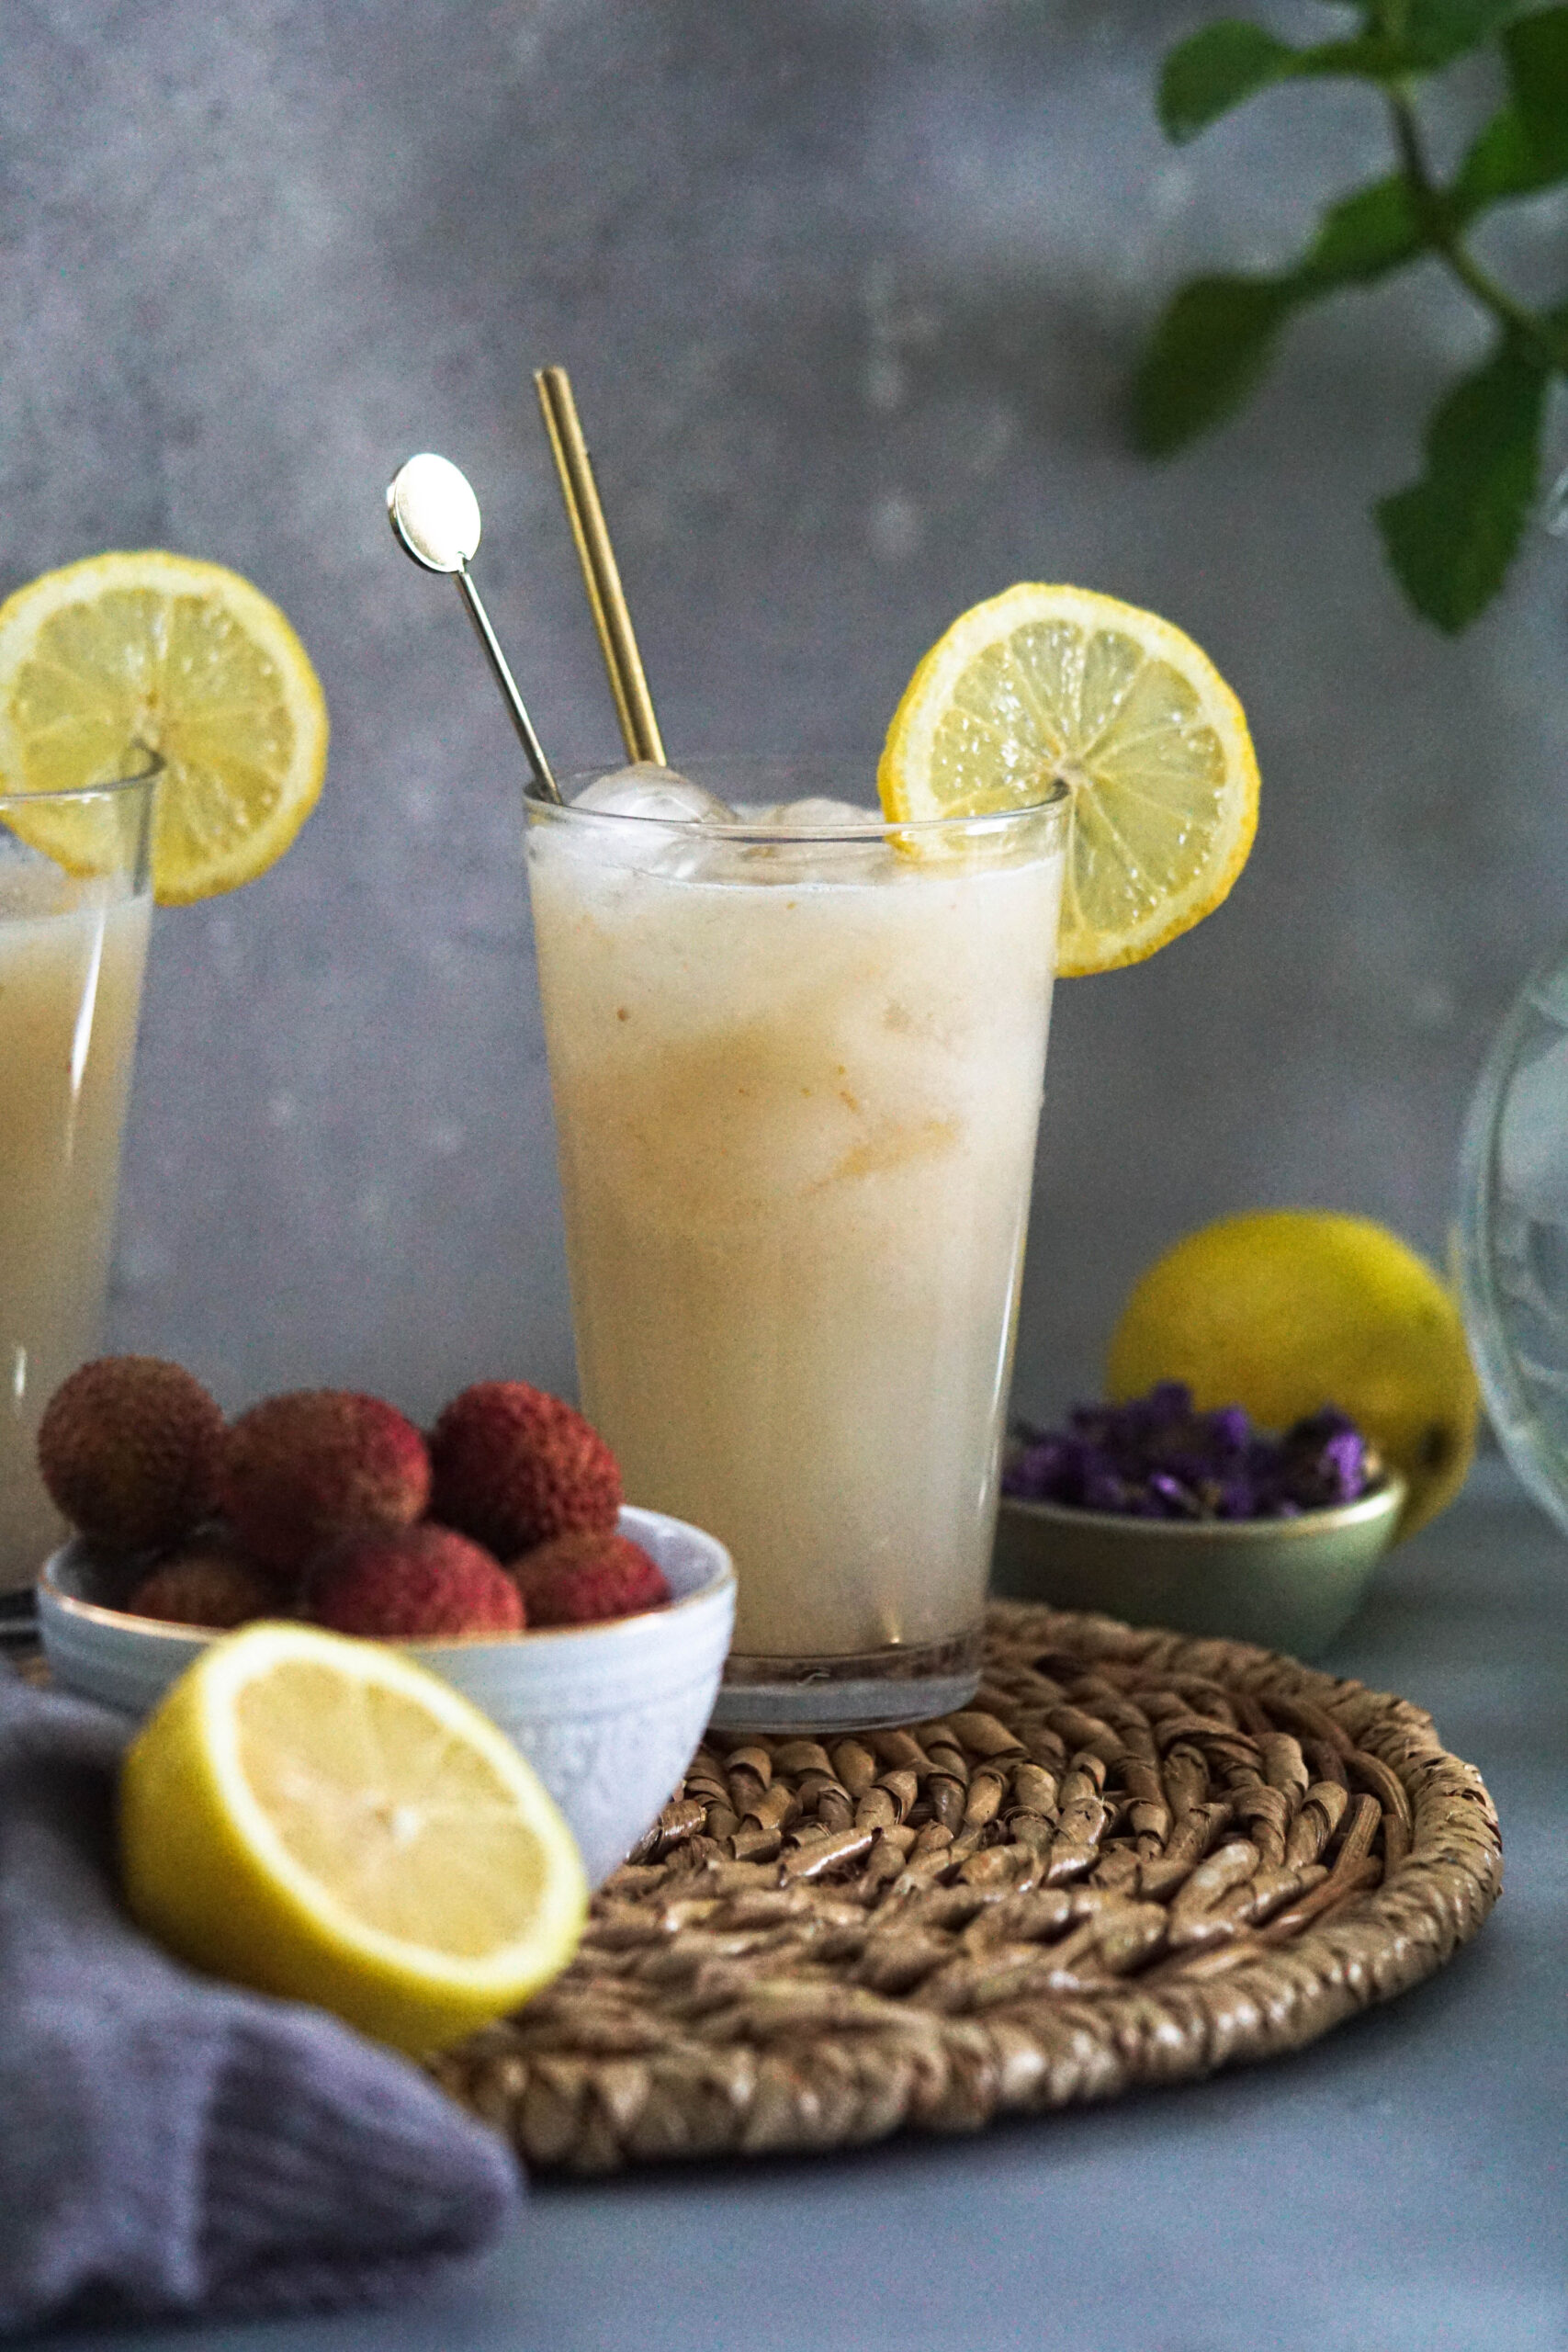 Lychee lemonade in a tall glass with stirrer and lemon slice and lychees in a bowl off to the side